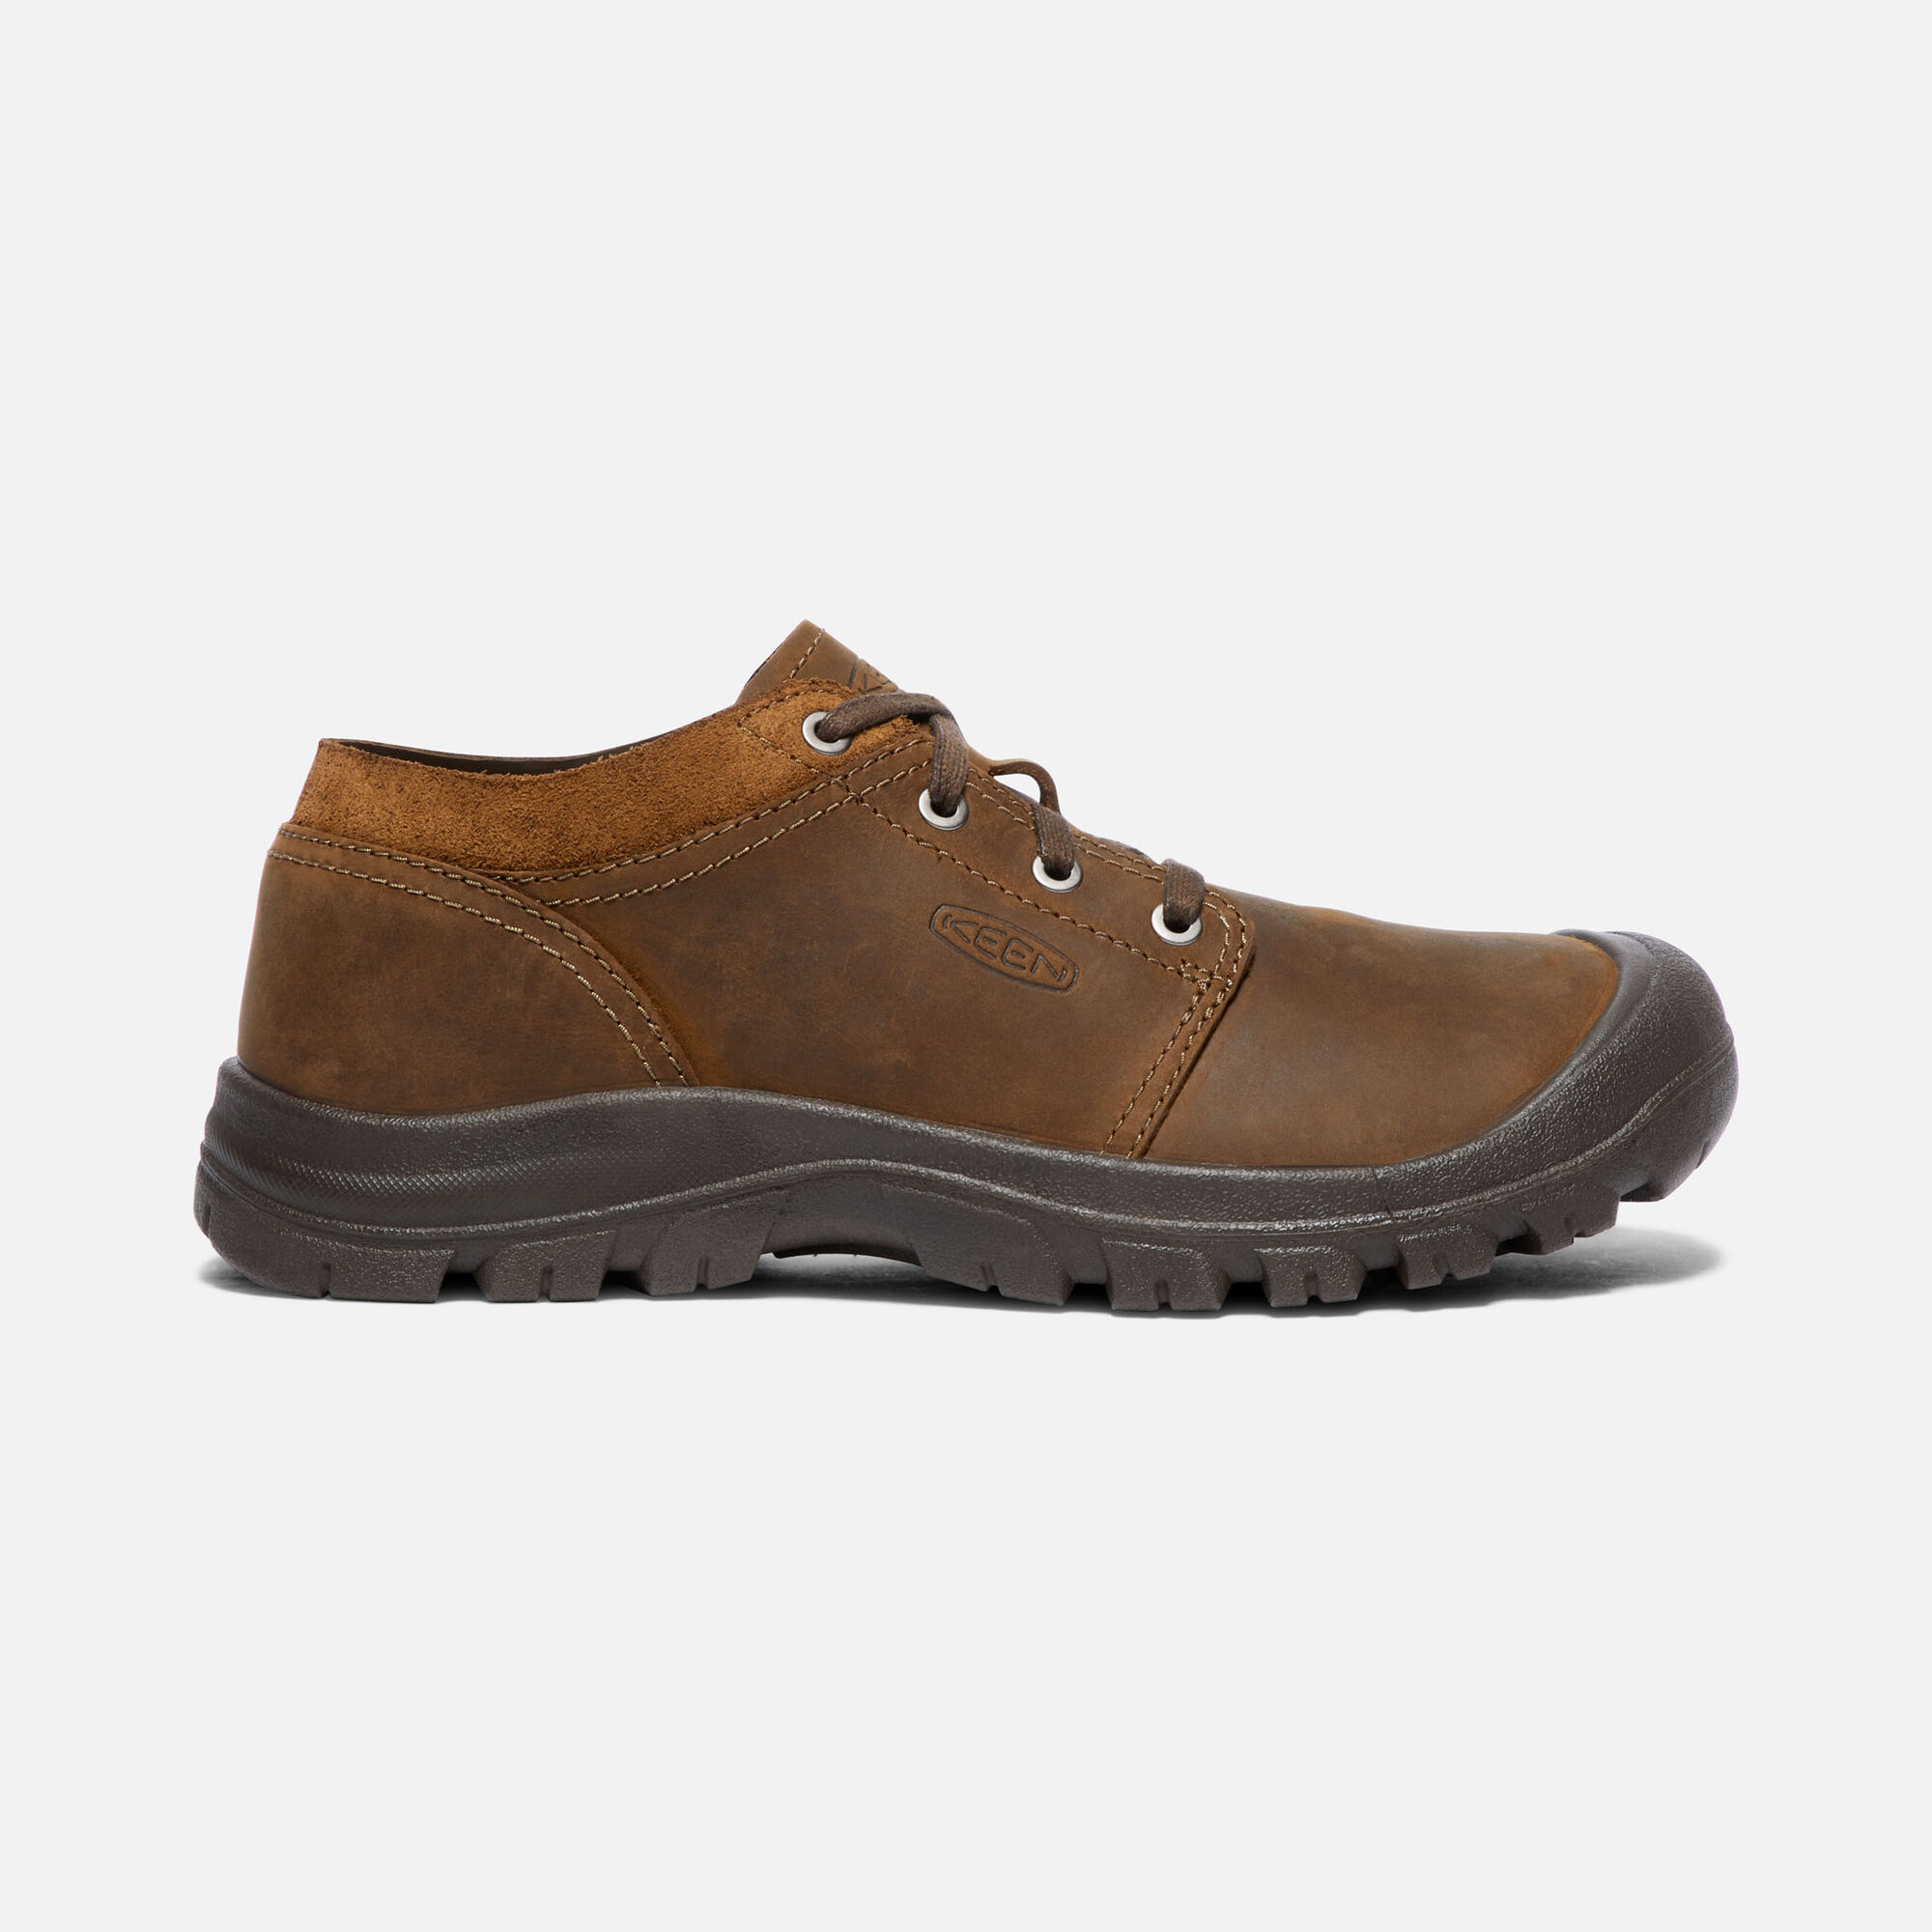 comfortable comforter nast story shoes comfort most cond for the european walking travel traveler